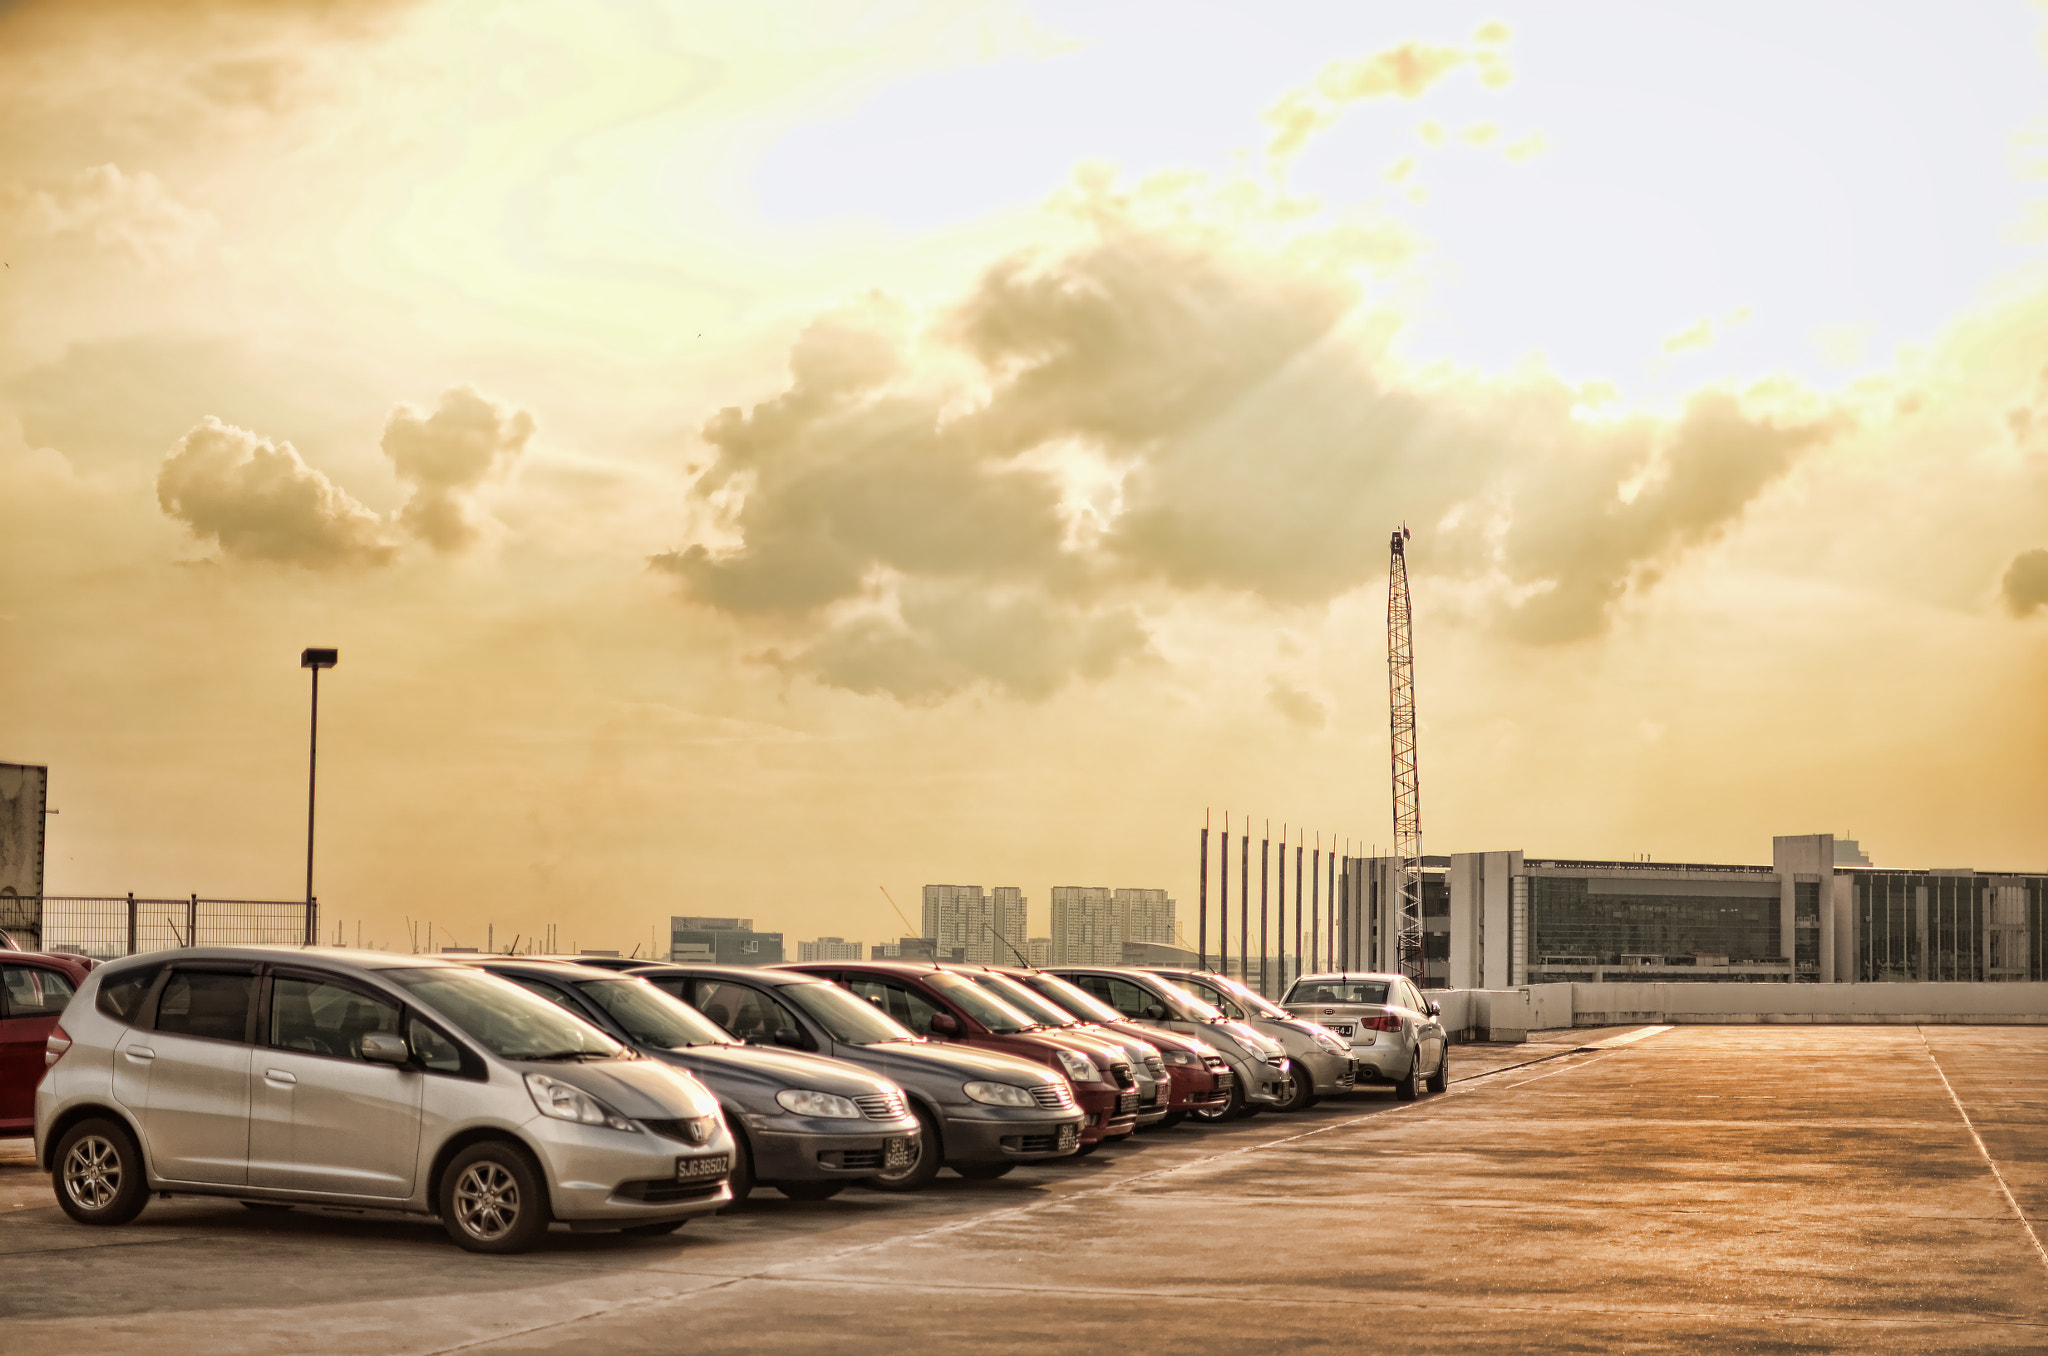 Photograph Cars by Myint Mo Oo on 500px